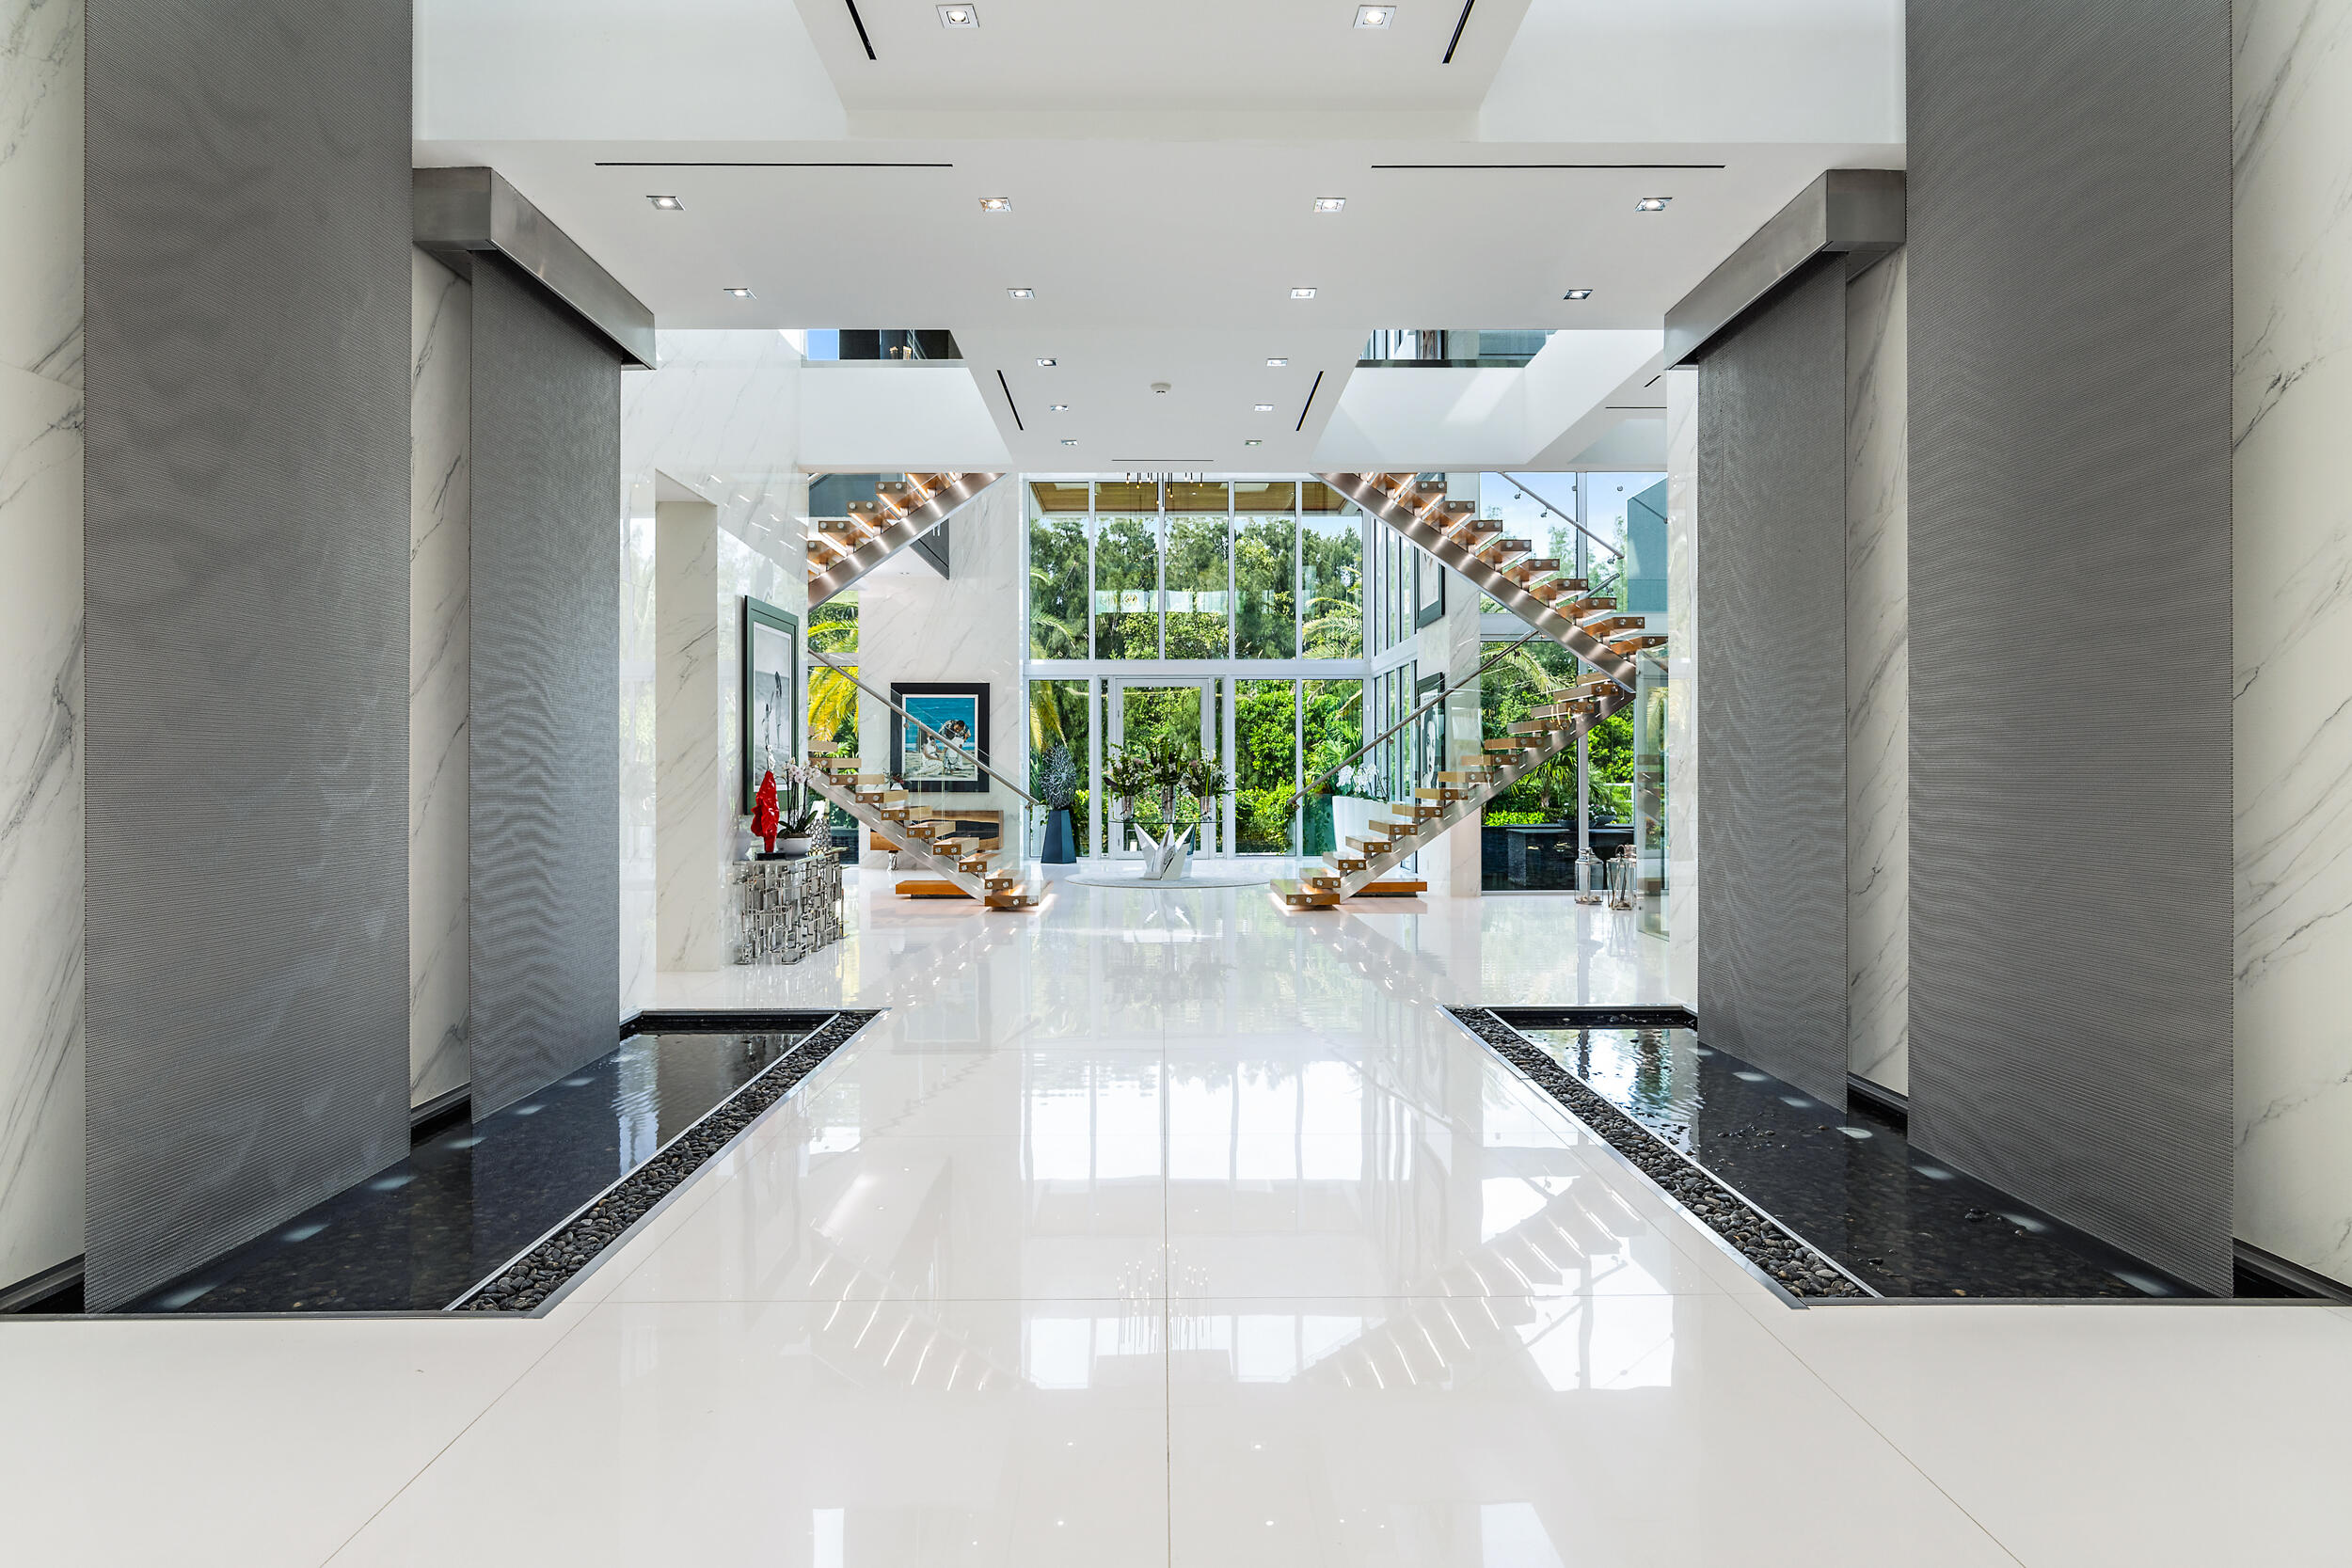 Foyer w/water features